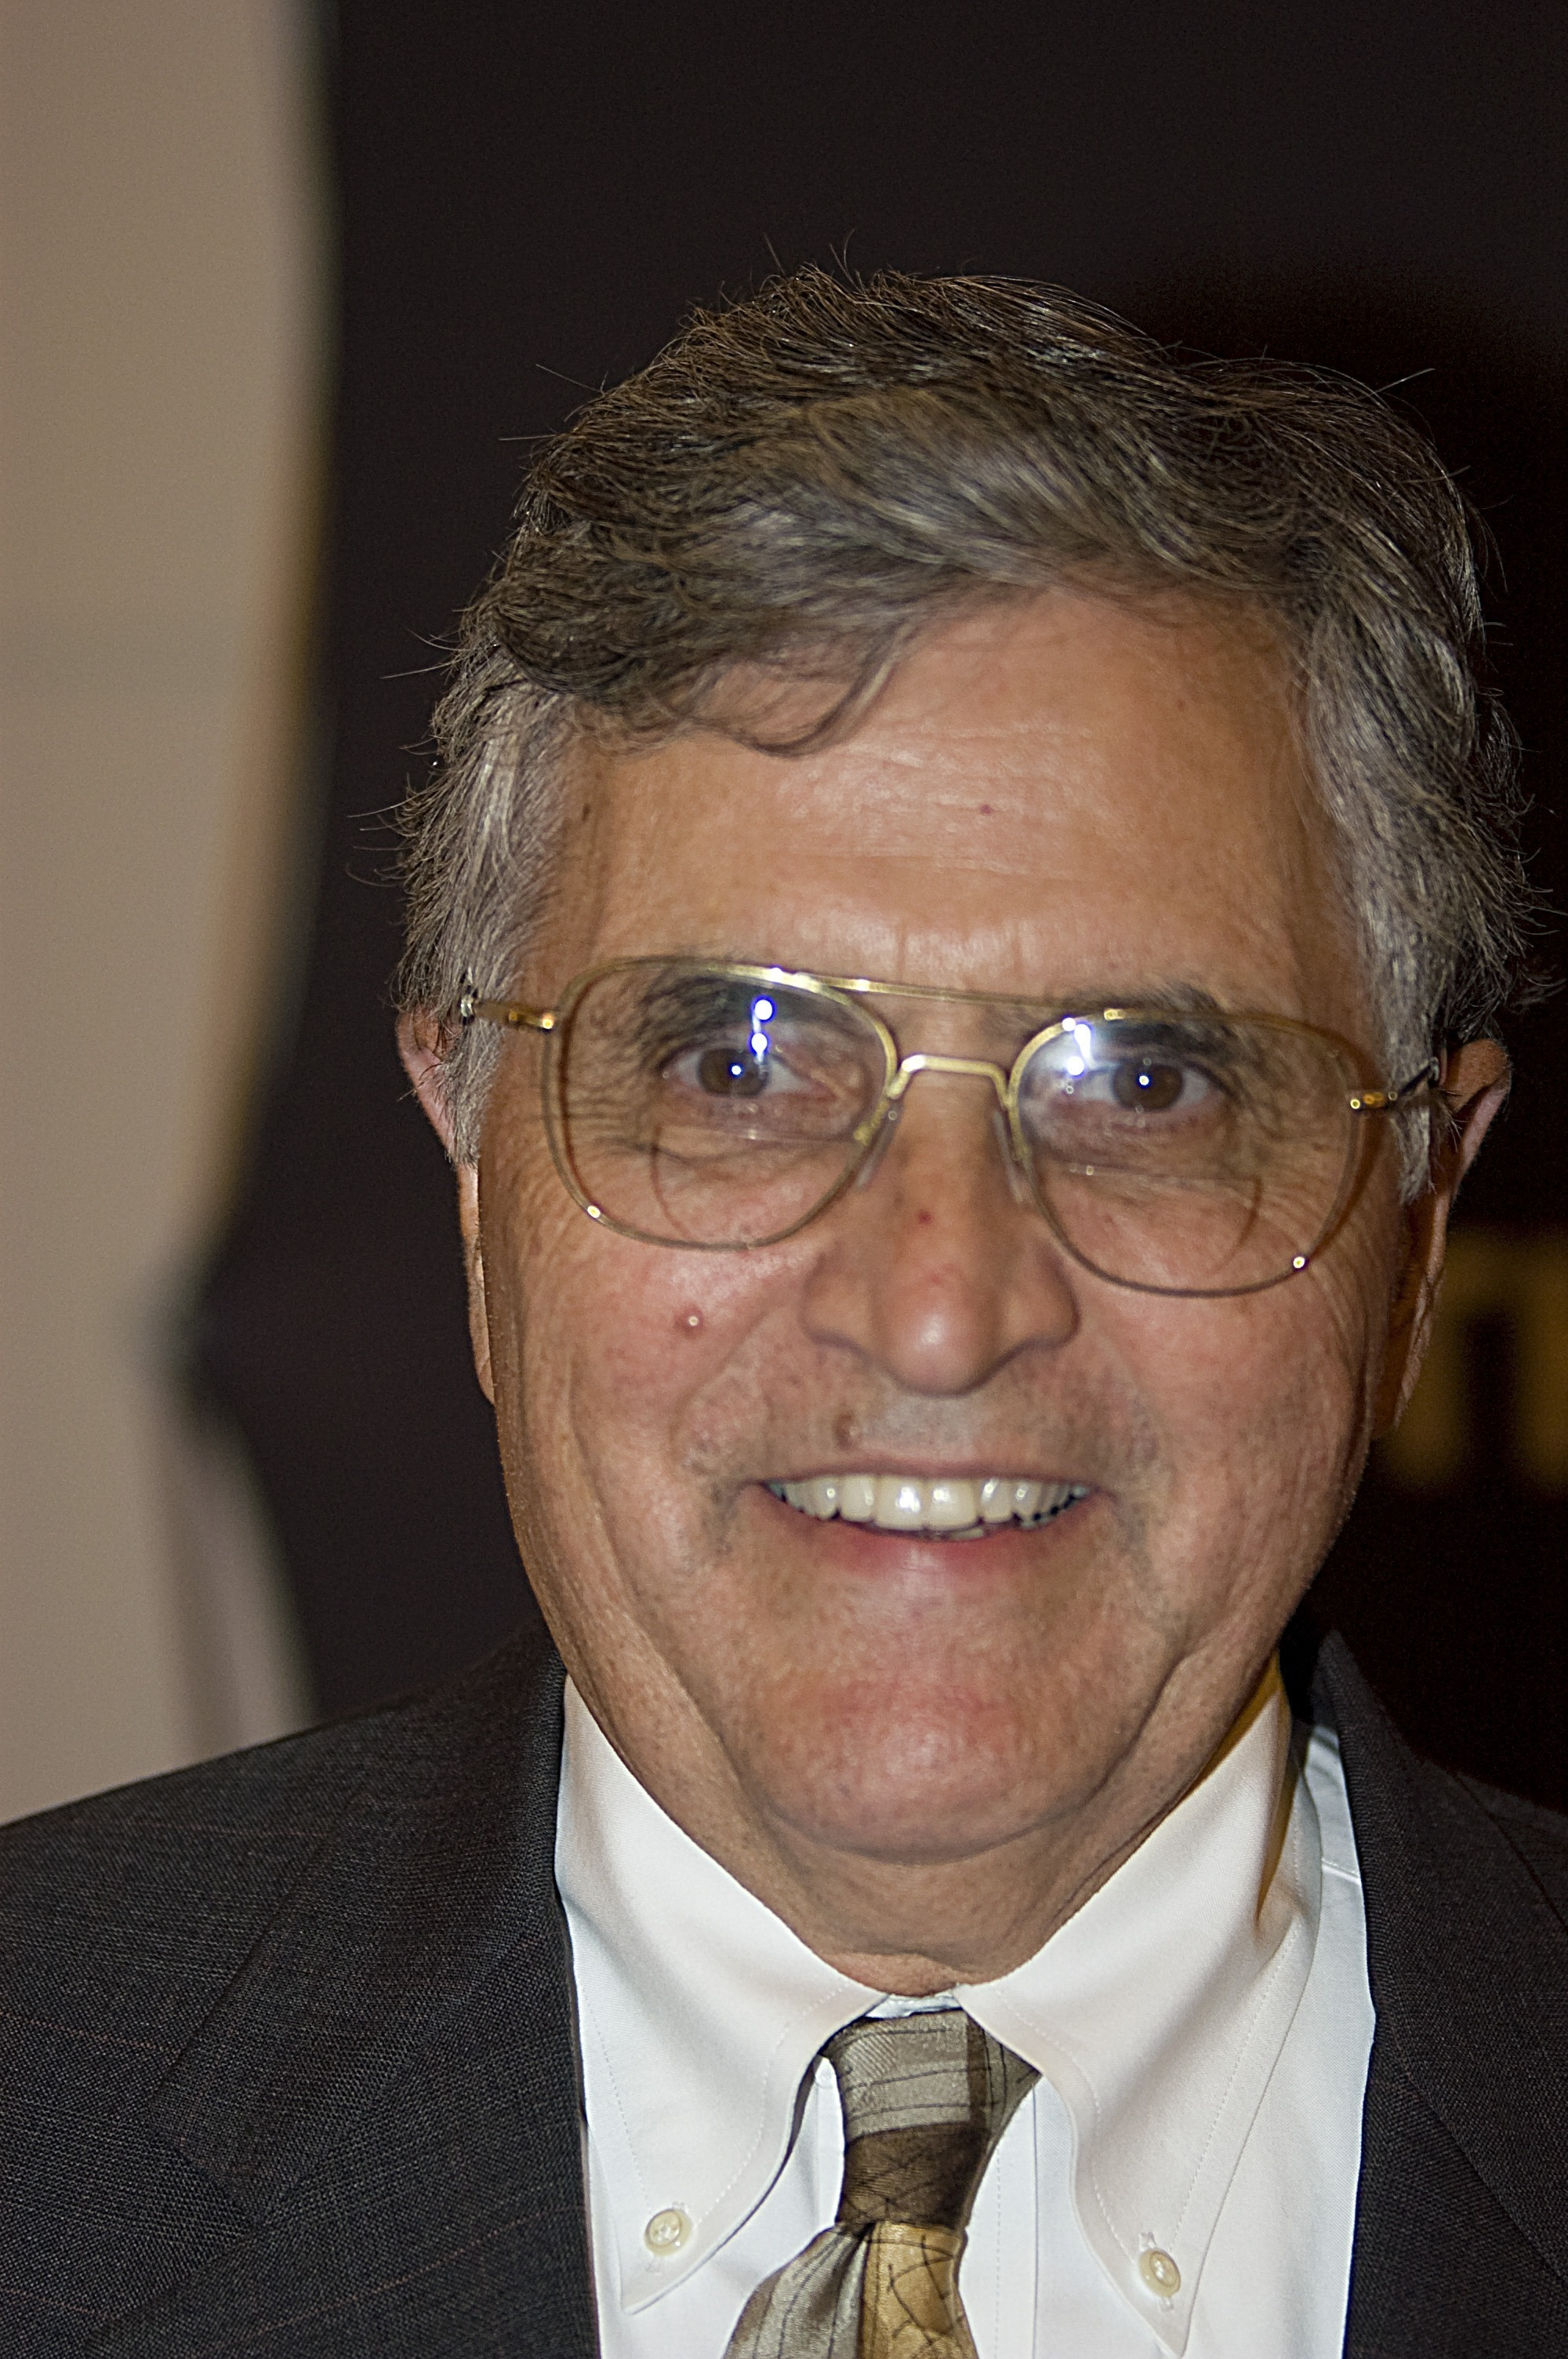 Harrison Schmitt, an Apollo astronaut who walked on the moon and a former senator, has repeatedly denied climate change.